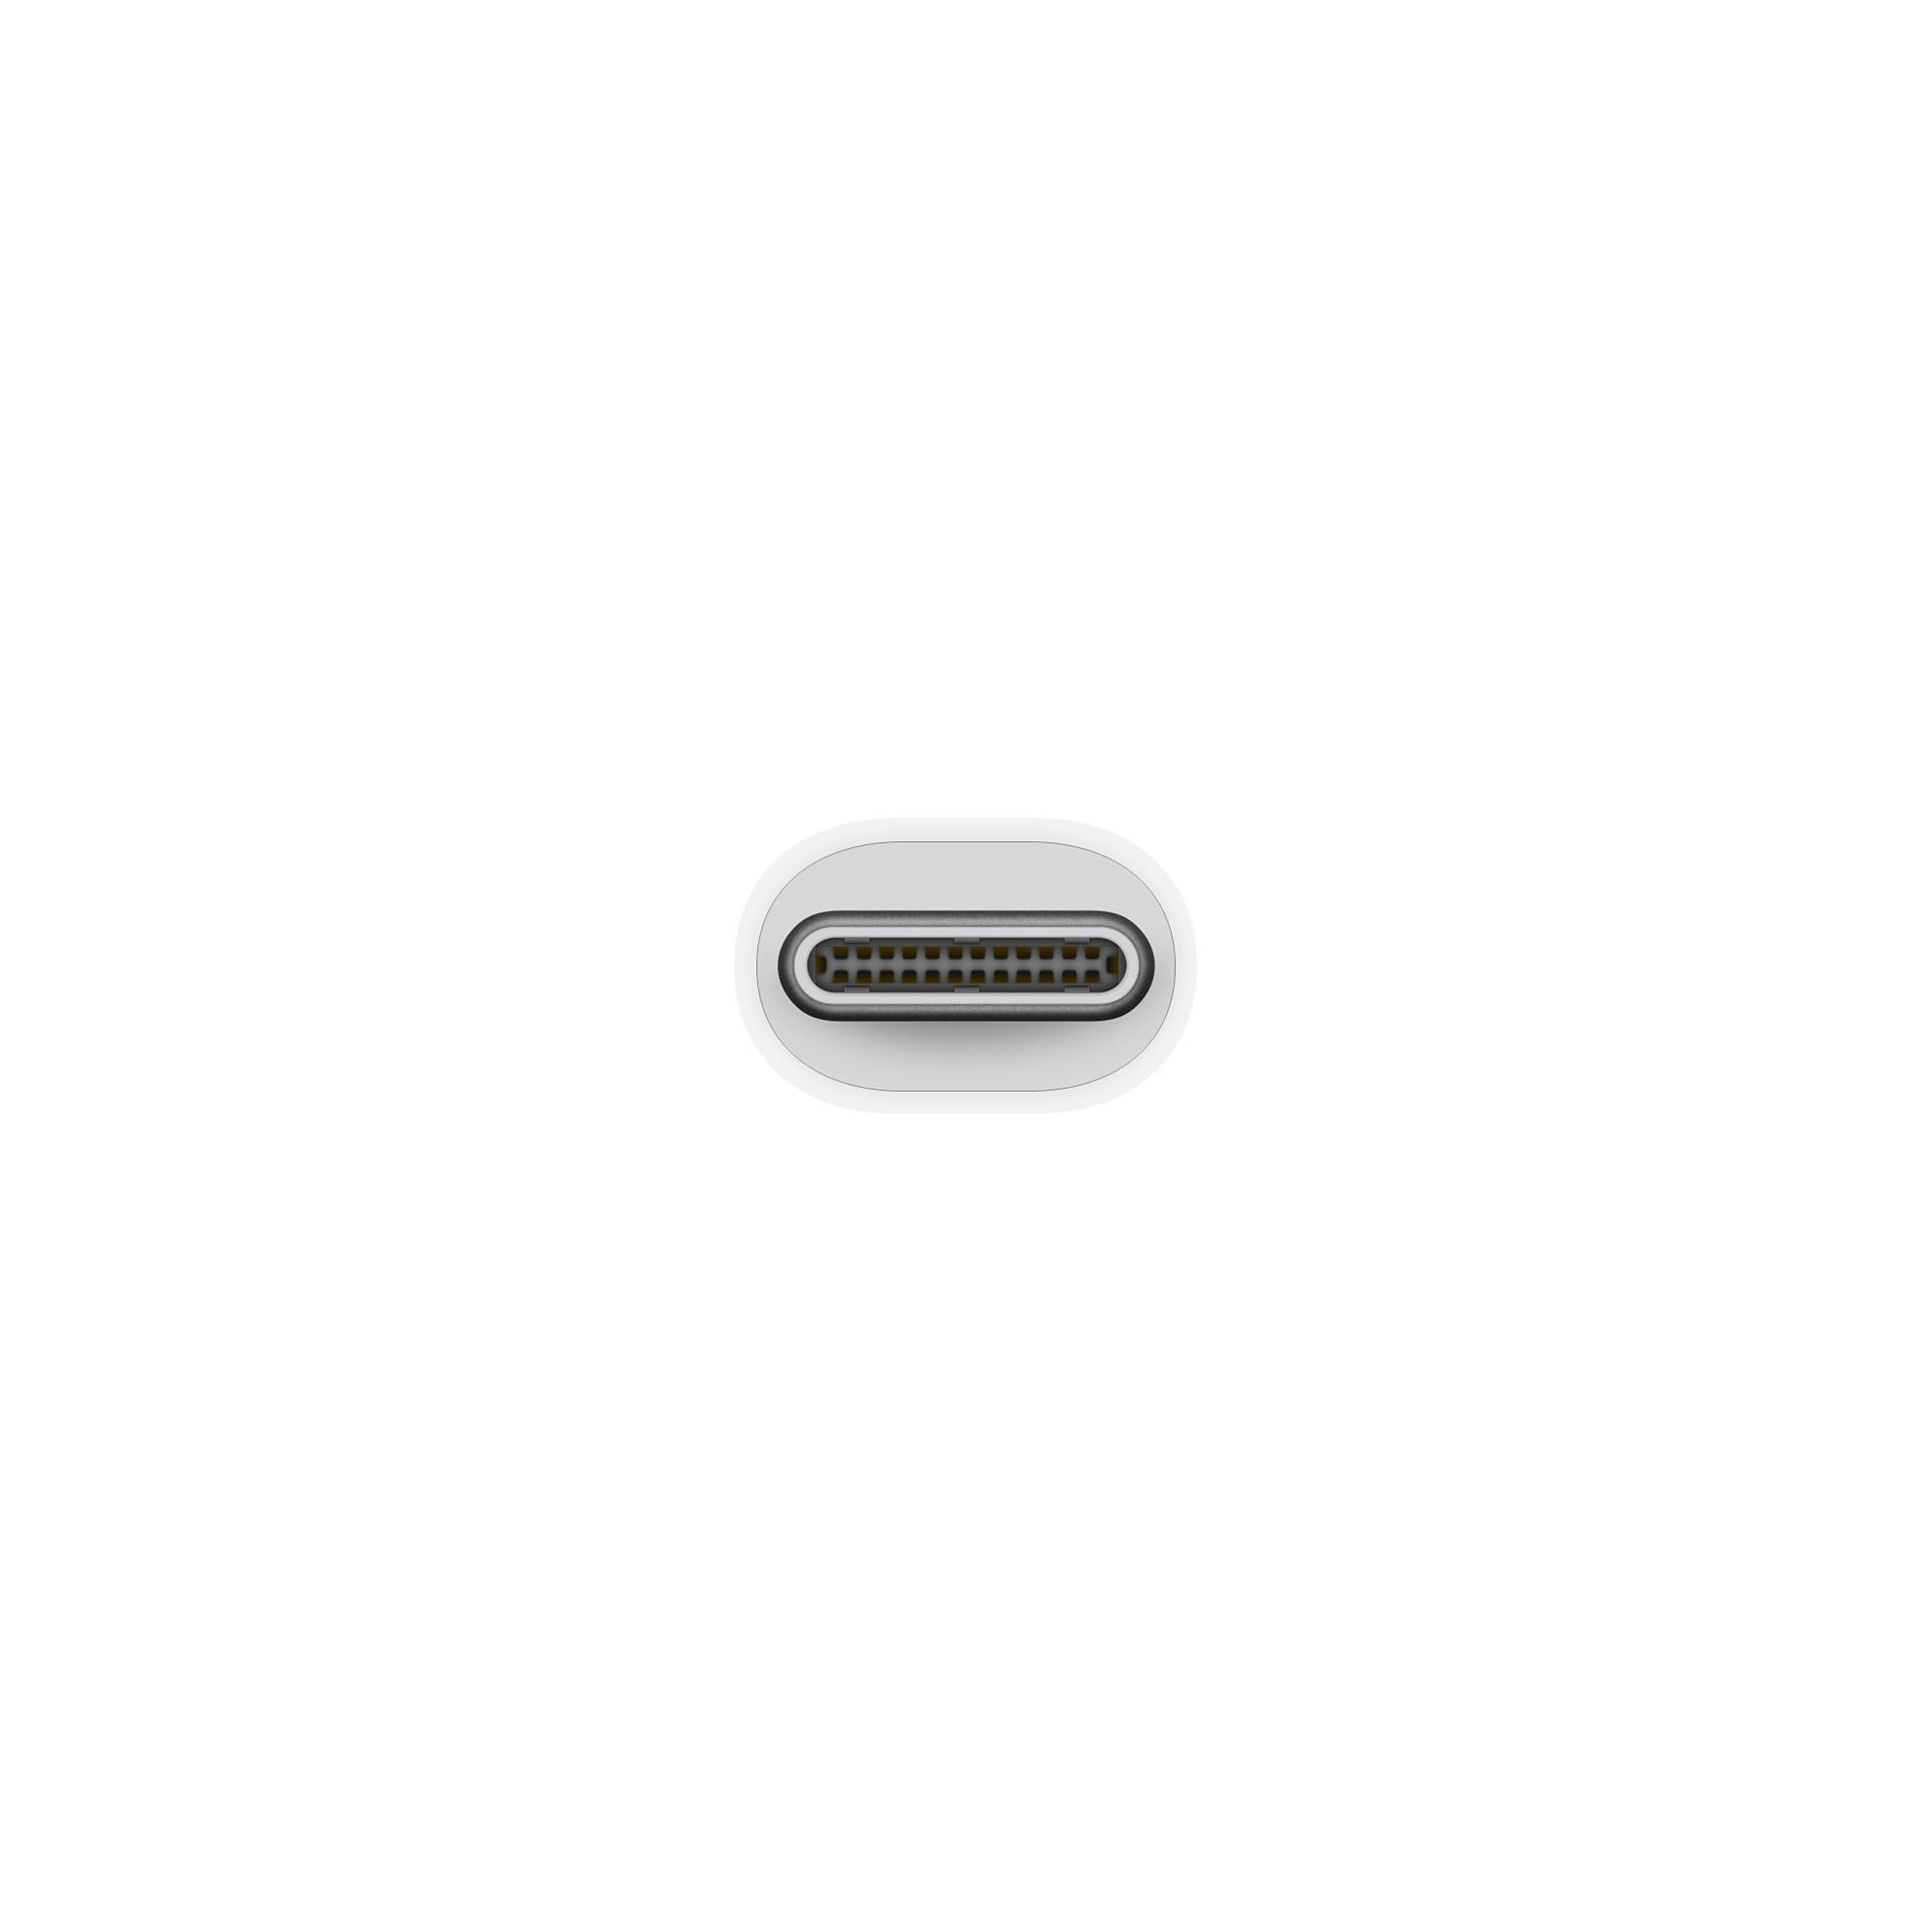 Picture of Apple Thunderbolt 3 (USB-C) to Thunderbolt 2 Adapter